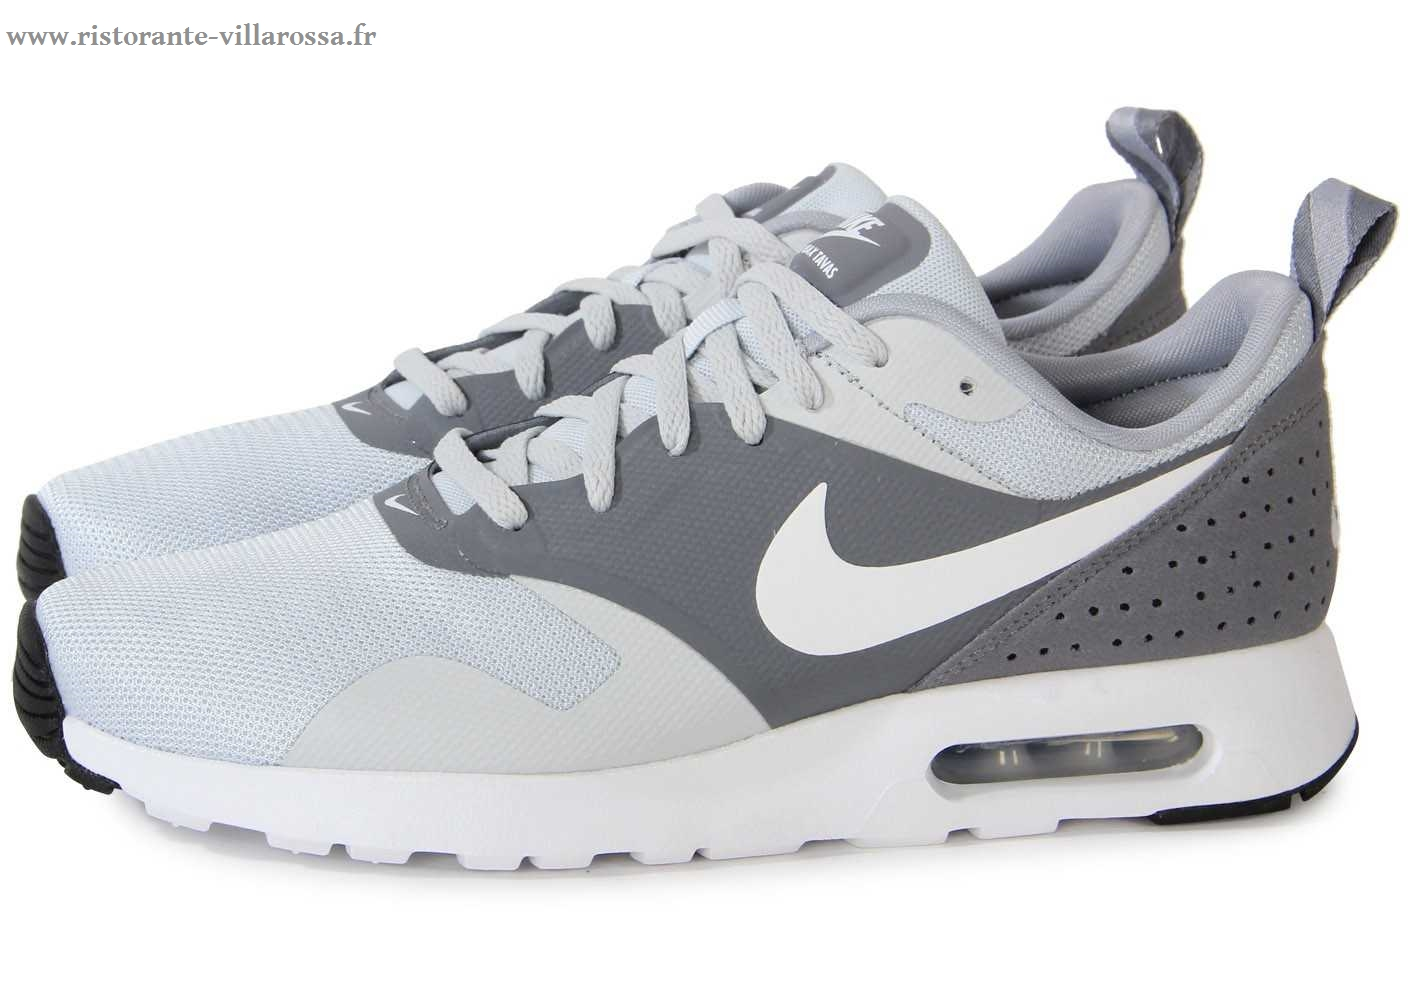 wholesale dealer 12753 70d50 nike tavas faJQy1a8 max air PTK homme chaussures 61wHxf5I